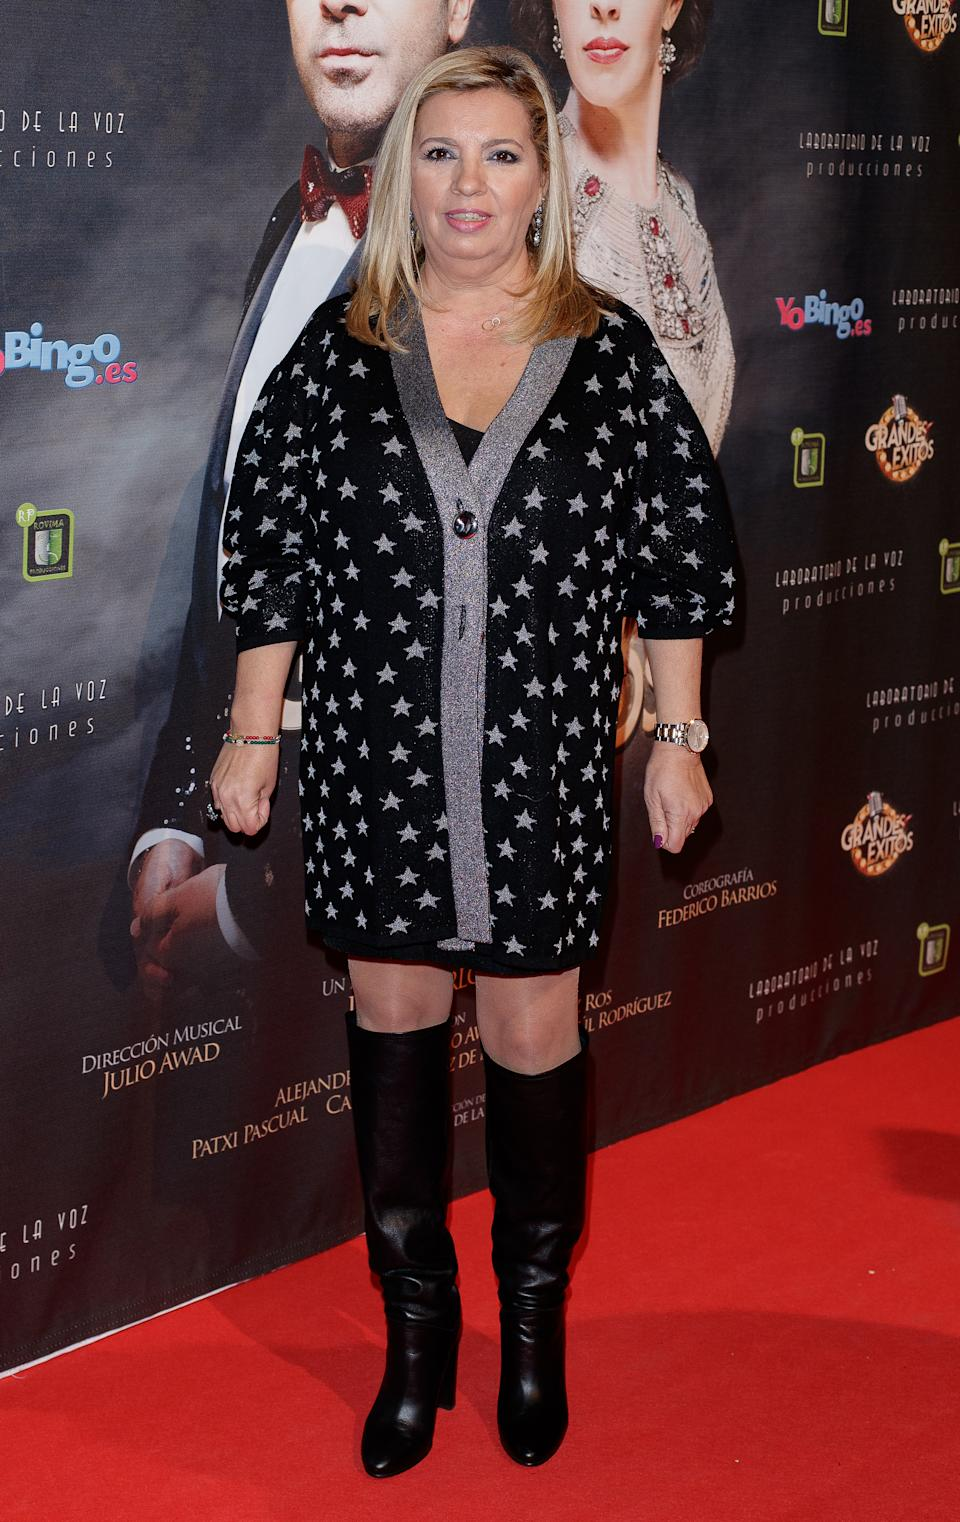 MADRID, SPAIN - JANUARY 15:  Carmen Borrego attends the 'Grandes Exitos' theatre play premiere at Rialto Theatre on January 15, 2018 in Madrid, Spain.  (Photo by Eduardo Parra/Getty Images)